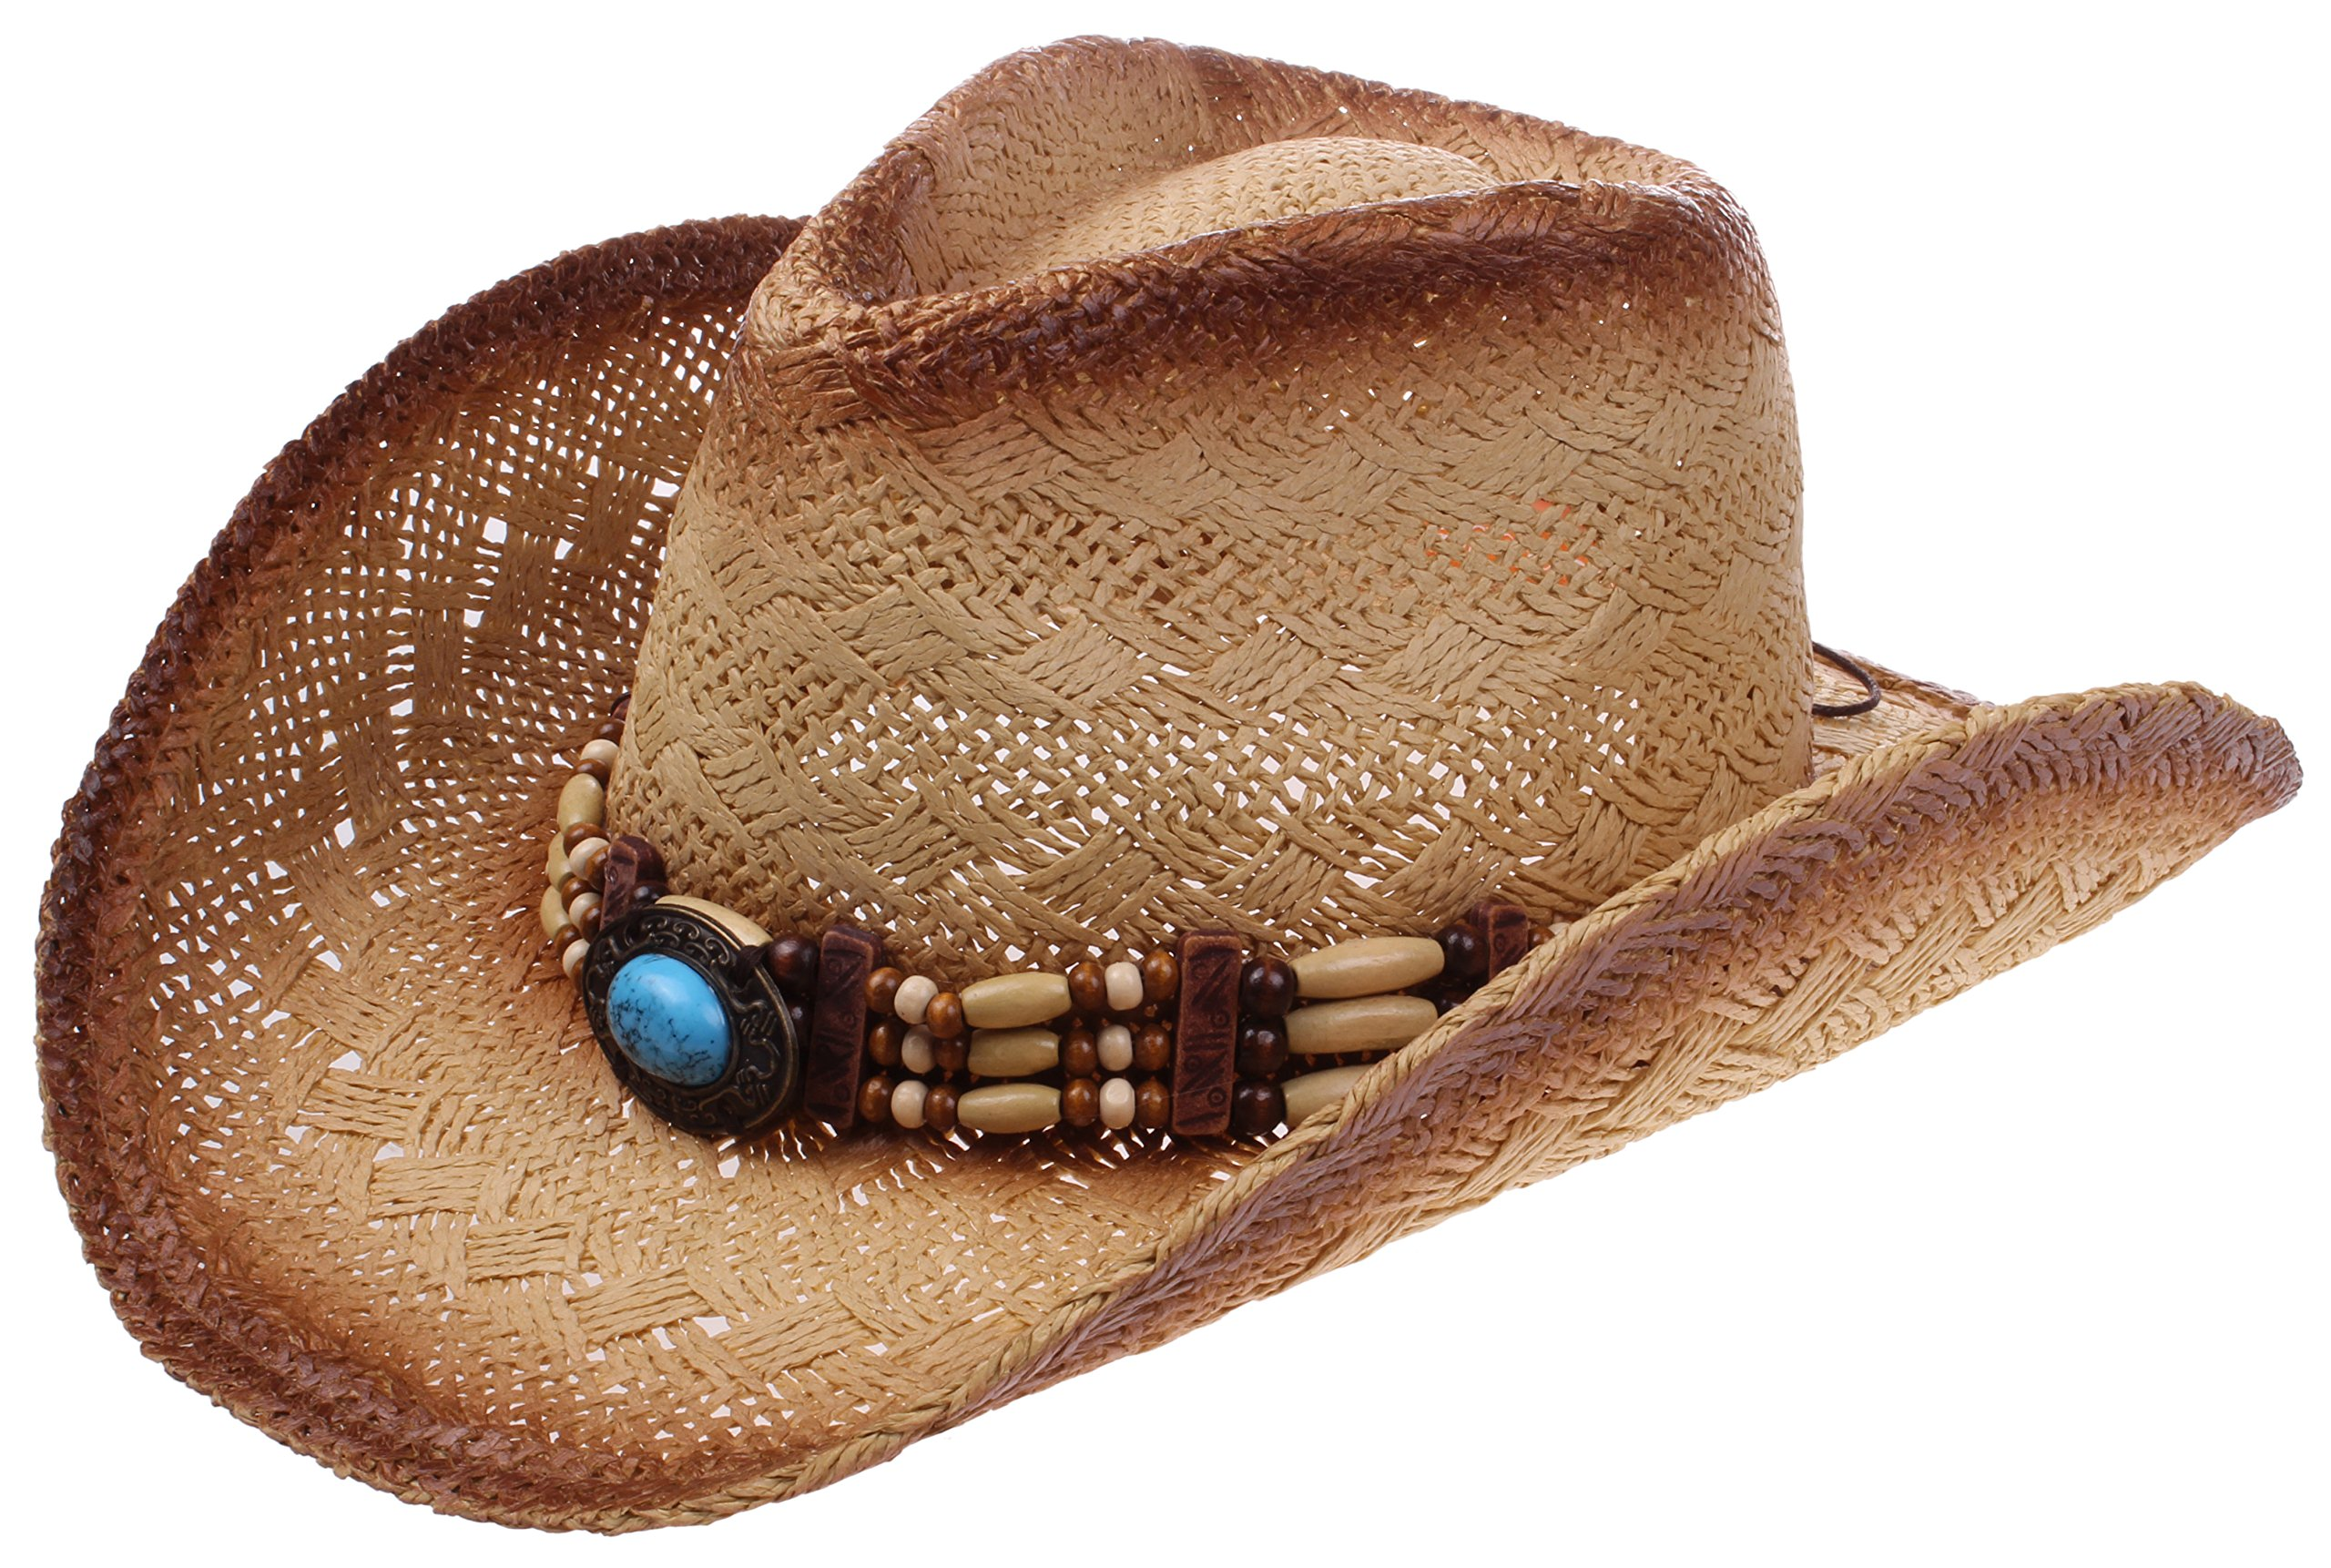 Enimay Western Outback Cowboy Hat Men's Women's Style Straw Felt Canvas (Western Brown)